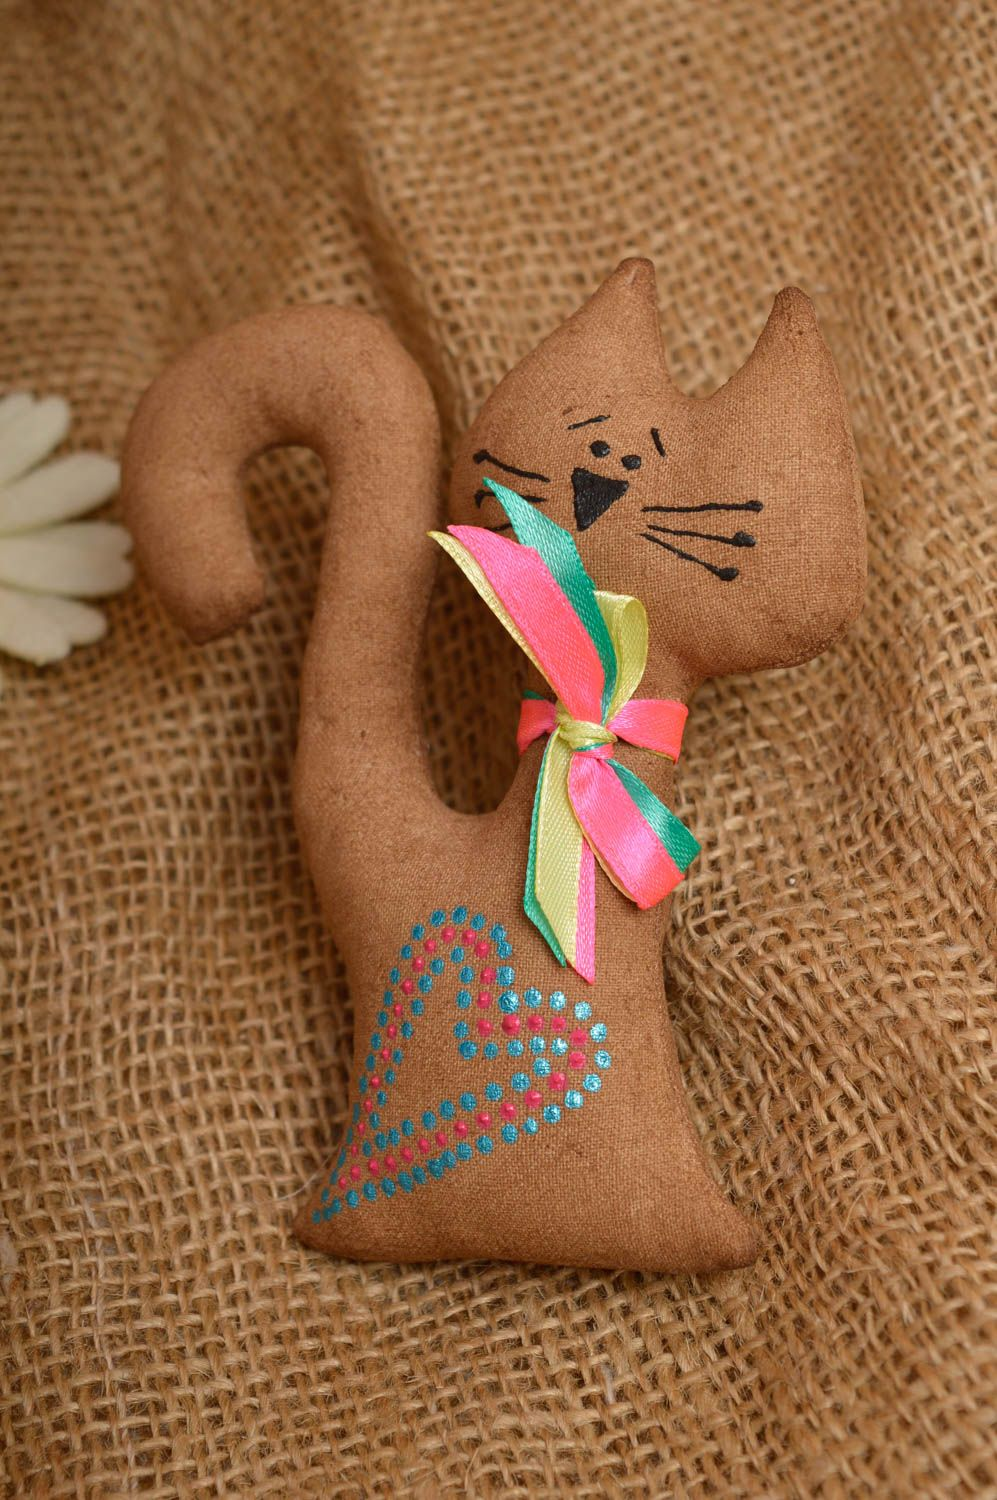 Handmade fridge magnet home decor soft toy for decorative use only cool gifts photo 1